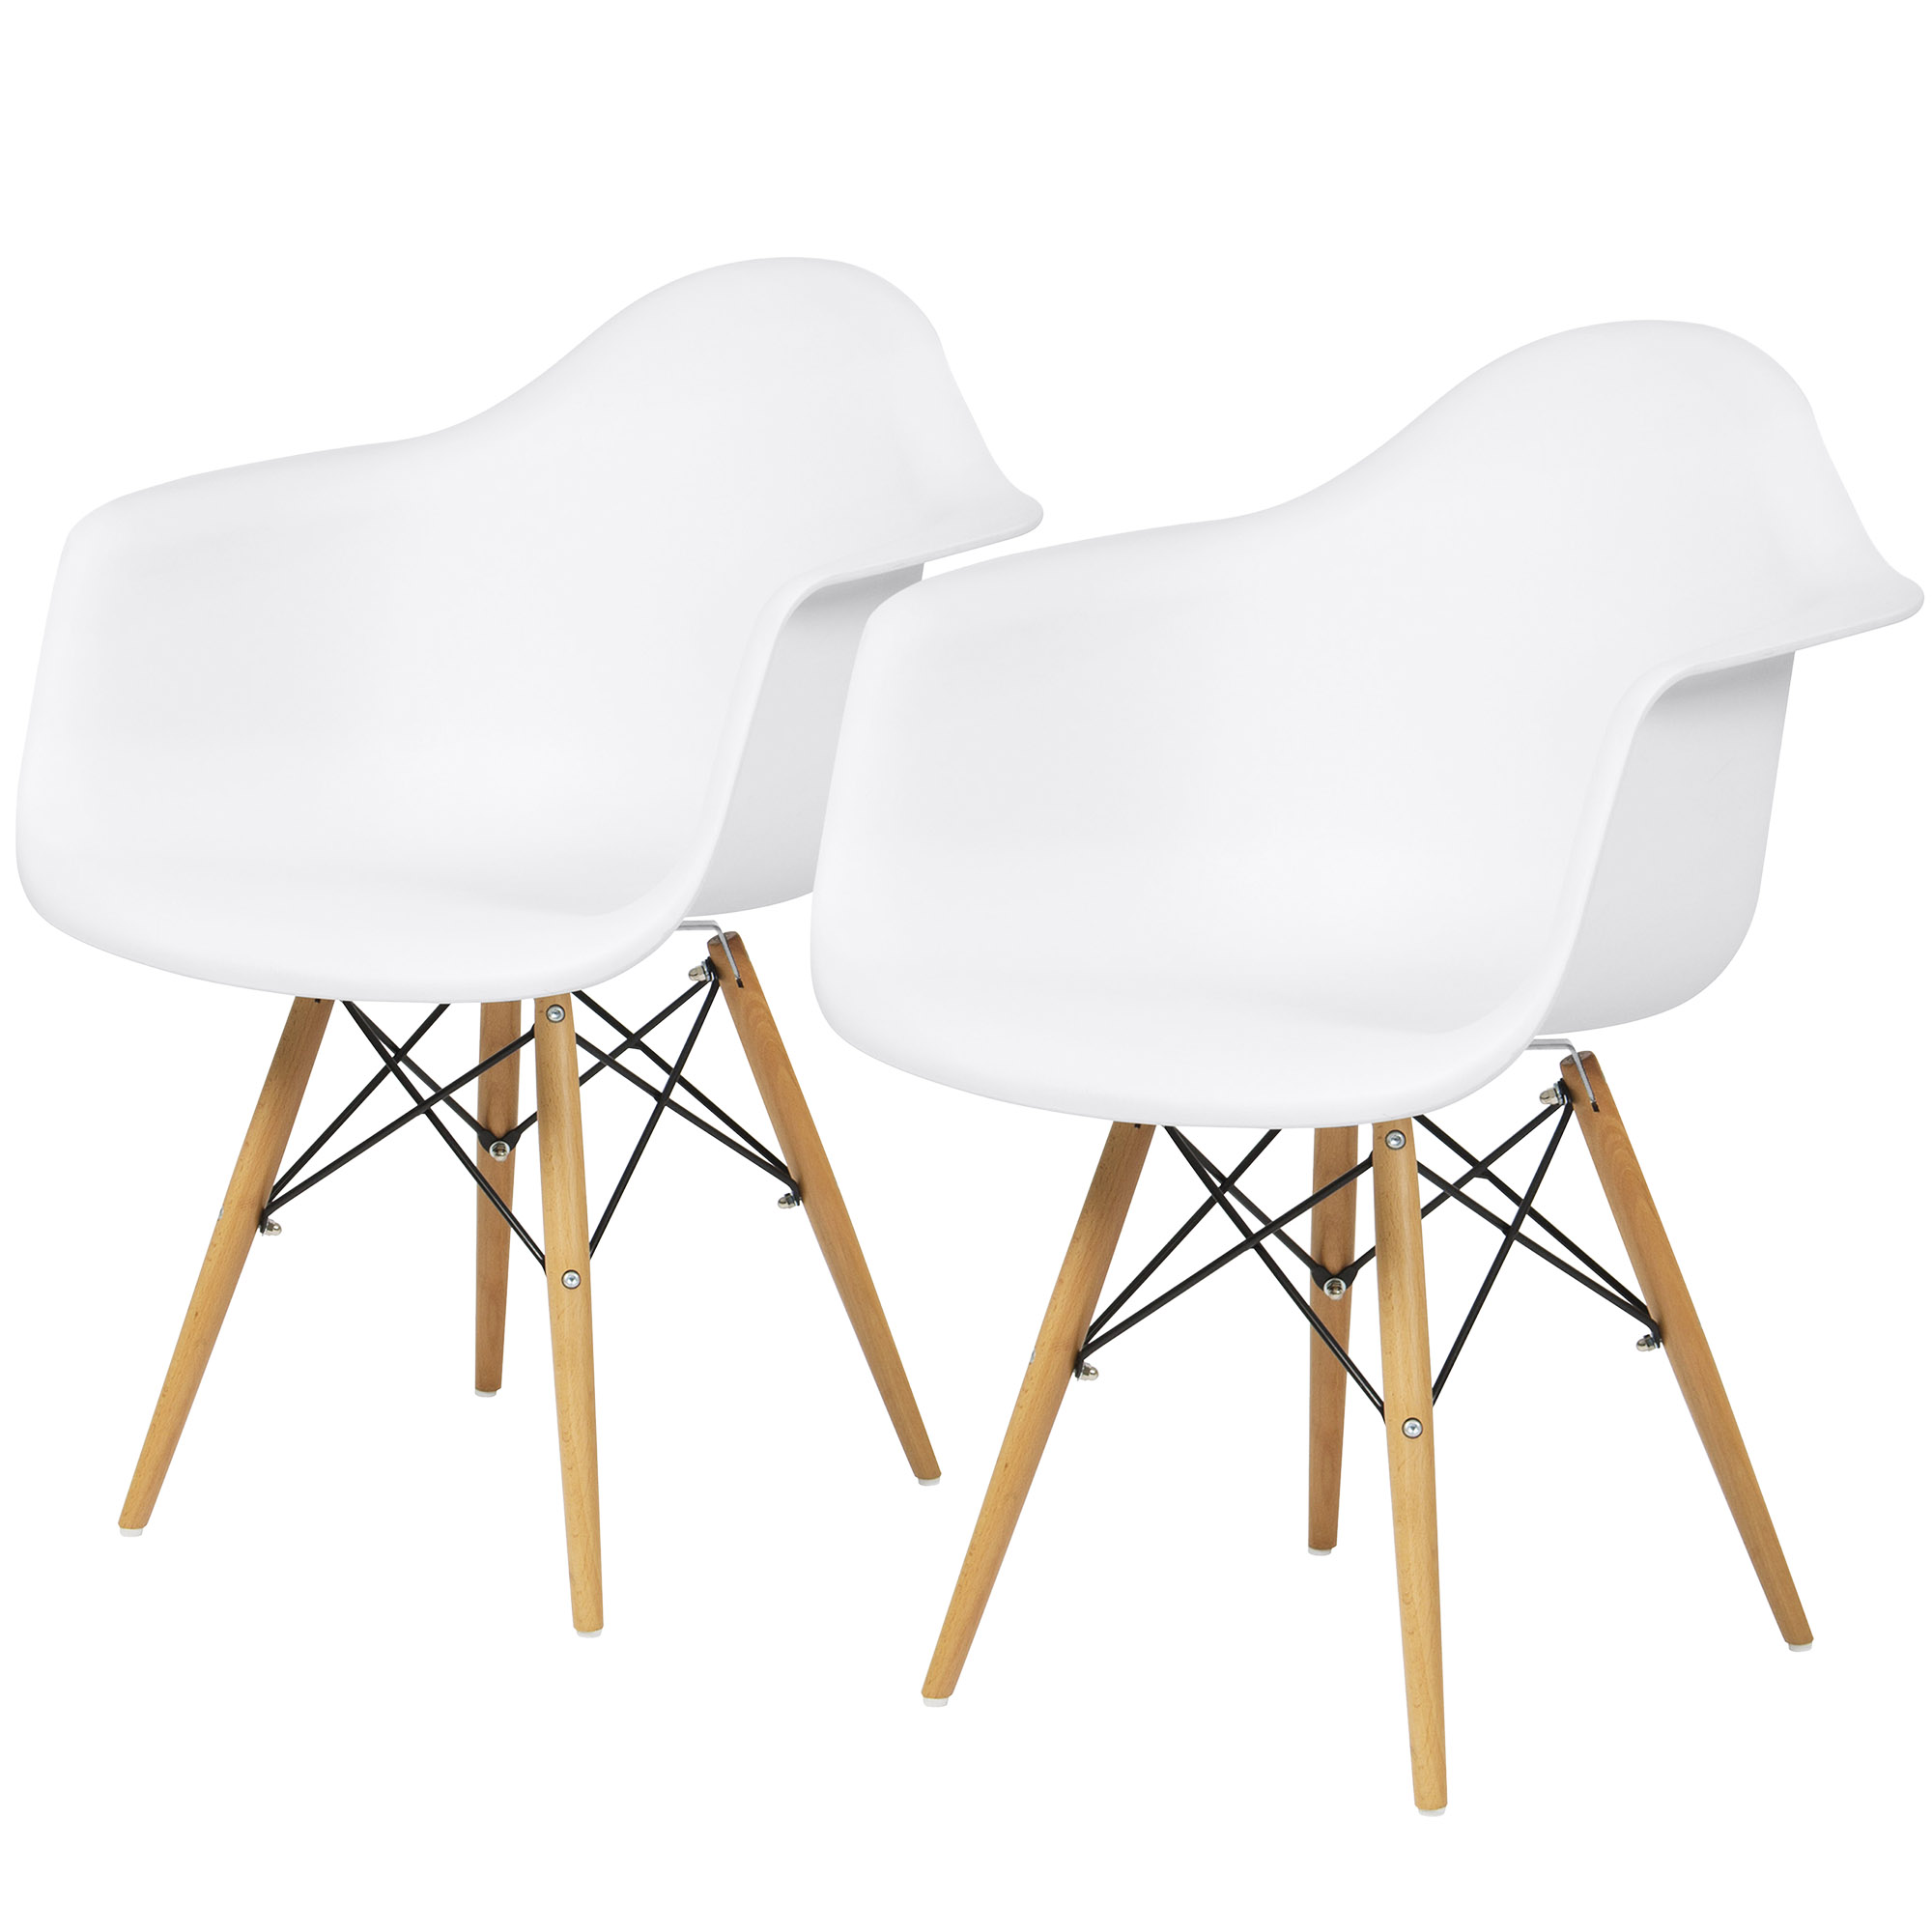 Best Choice Products Set of 2 Mid-Century Modern Eames Style Accent Arm Chairs for Dining, Office, Living Room - White